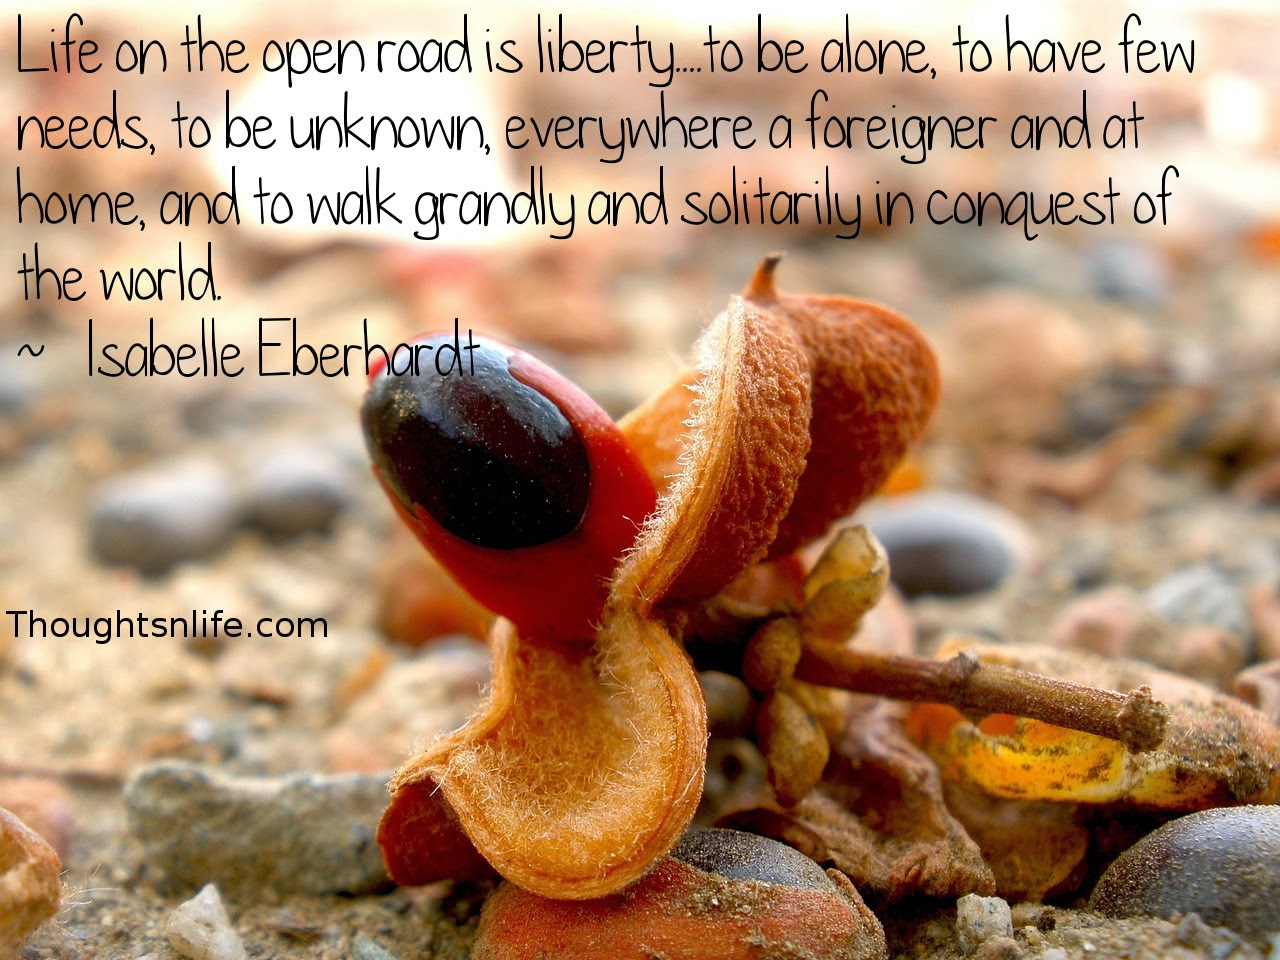 Thoughtsnlife.com: Life on the open road is liberty....to be alone,  to have few needs, to be unknown,  everywhere a foreigner and at home,  and to walk grandly and solitarily in conquest of the world.  ~   Isabelle Eberhardt